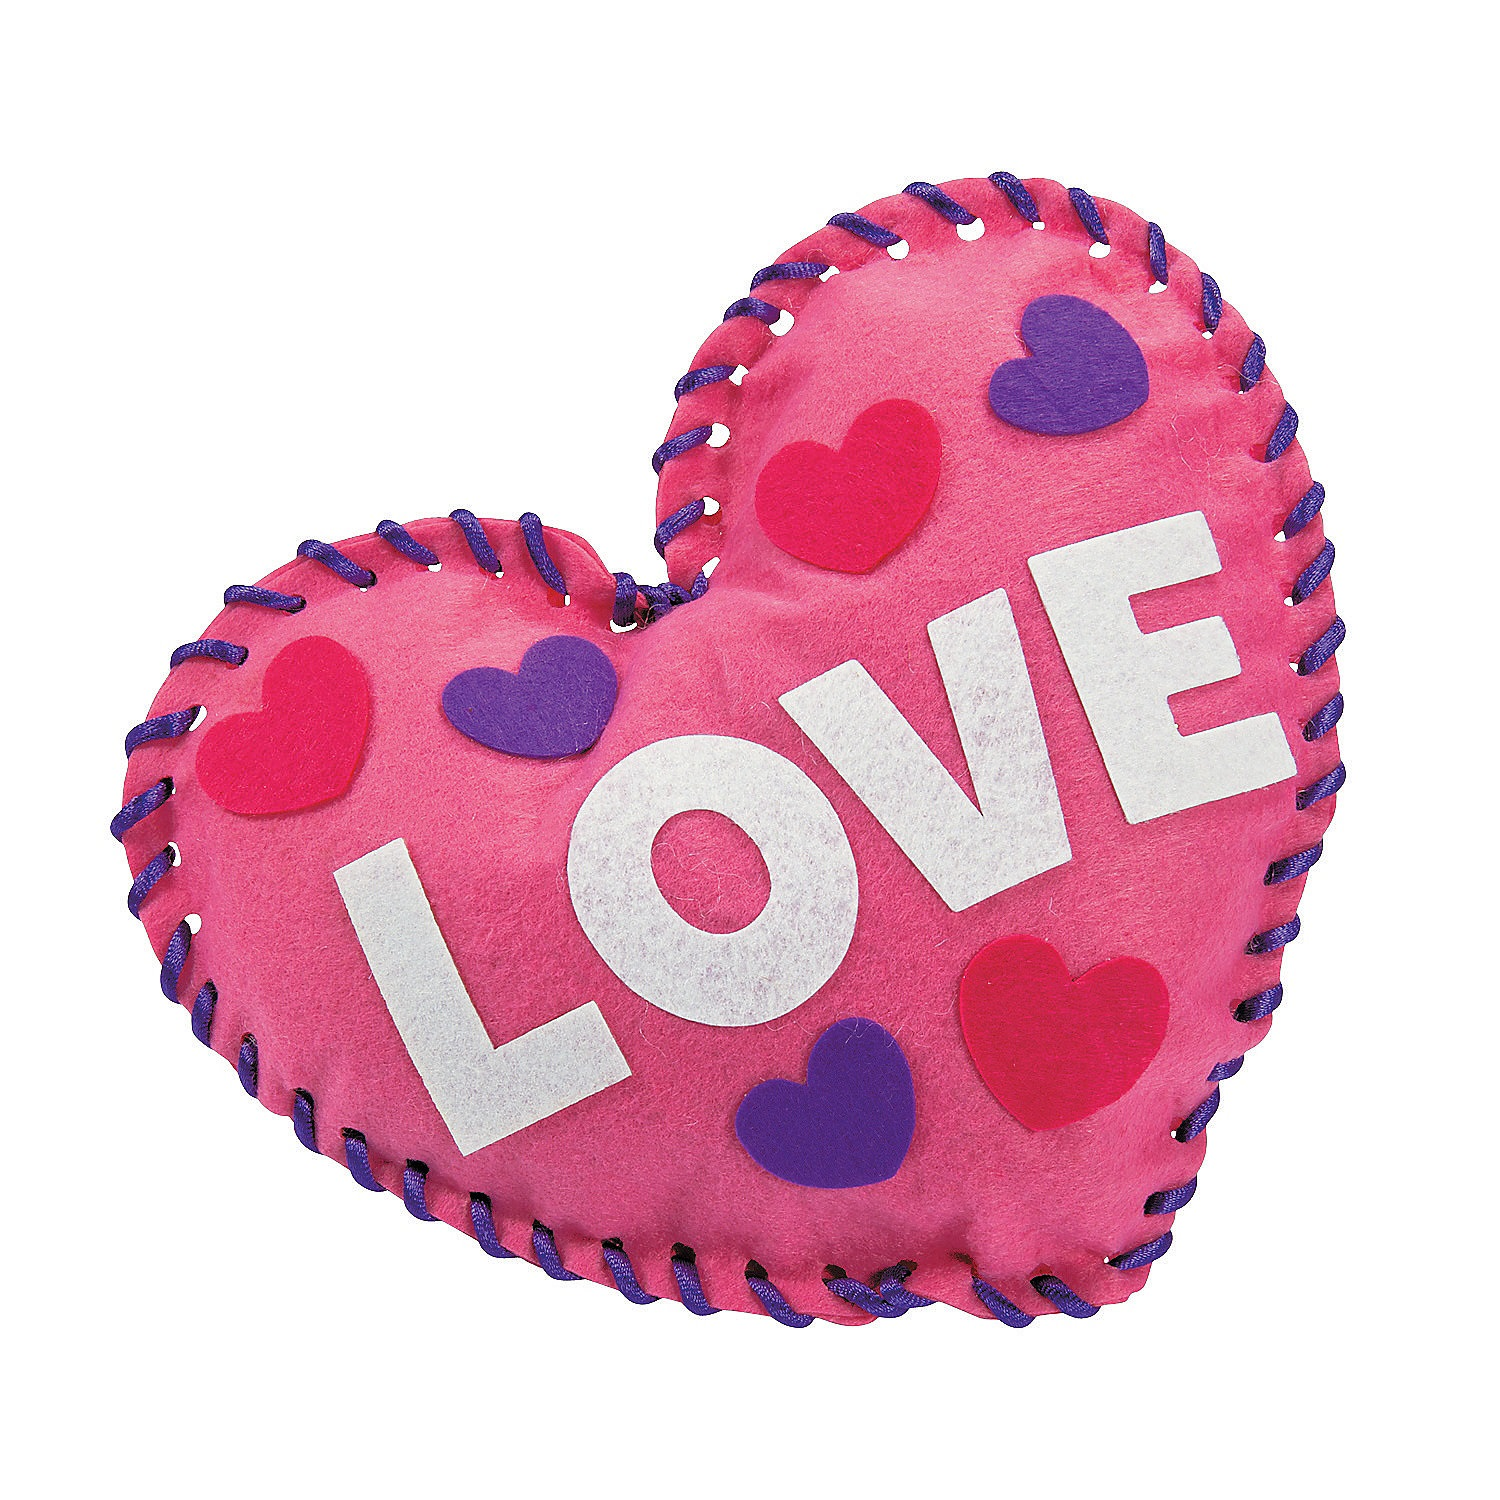 13758298-plush-conversation-hearts-lacing-craft-kit-oshc-oosh-kids-love-mothers-day-shopping-centre-activation.jpg